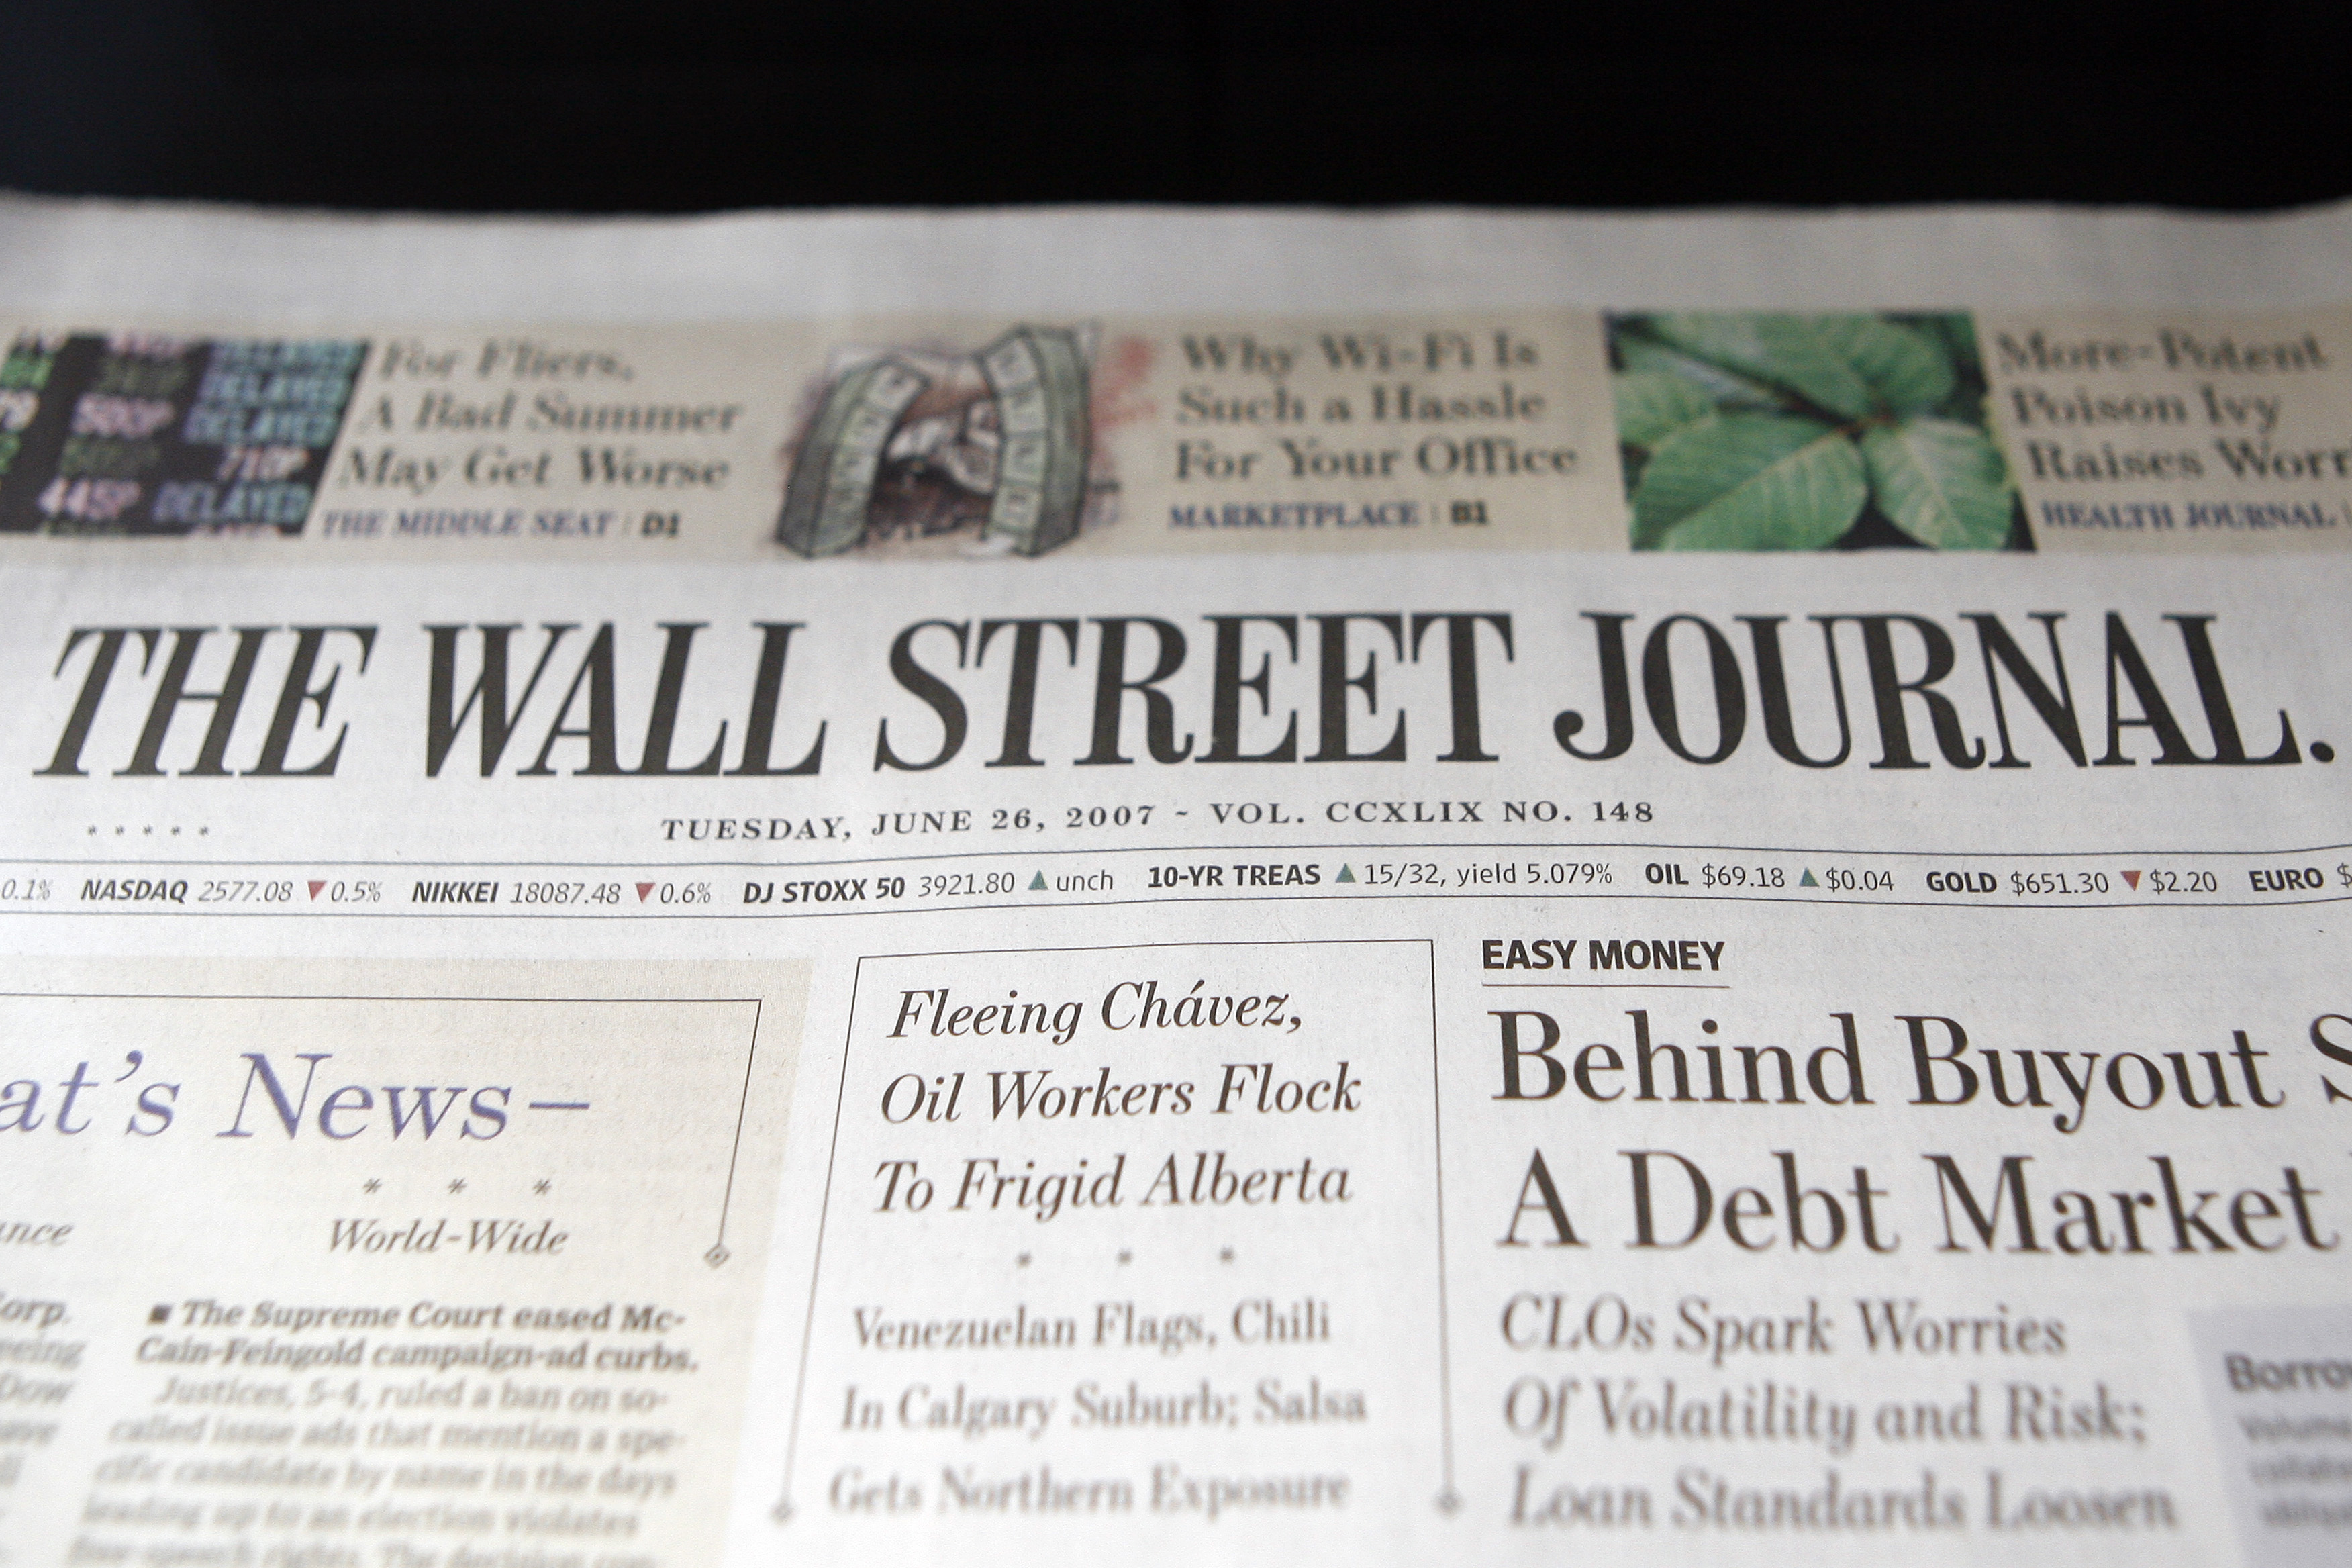 """A copy of the Wall Street Journal is pictured in a newsstand in New York, June 26, 2007. Rupert Murdoch's News Corp. and Dow Jones & Co. Inc. have """"basically agreed"""" on a structure to protect the editorial independence of Dow Jones' news operations, a source familiar with the matter said on Tuesday. News Corp. is offering $5 billion to buy Dow Jones.  REUTERS/Keith Bedford (UNITED STATES) - RTR1R6CD"""